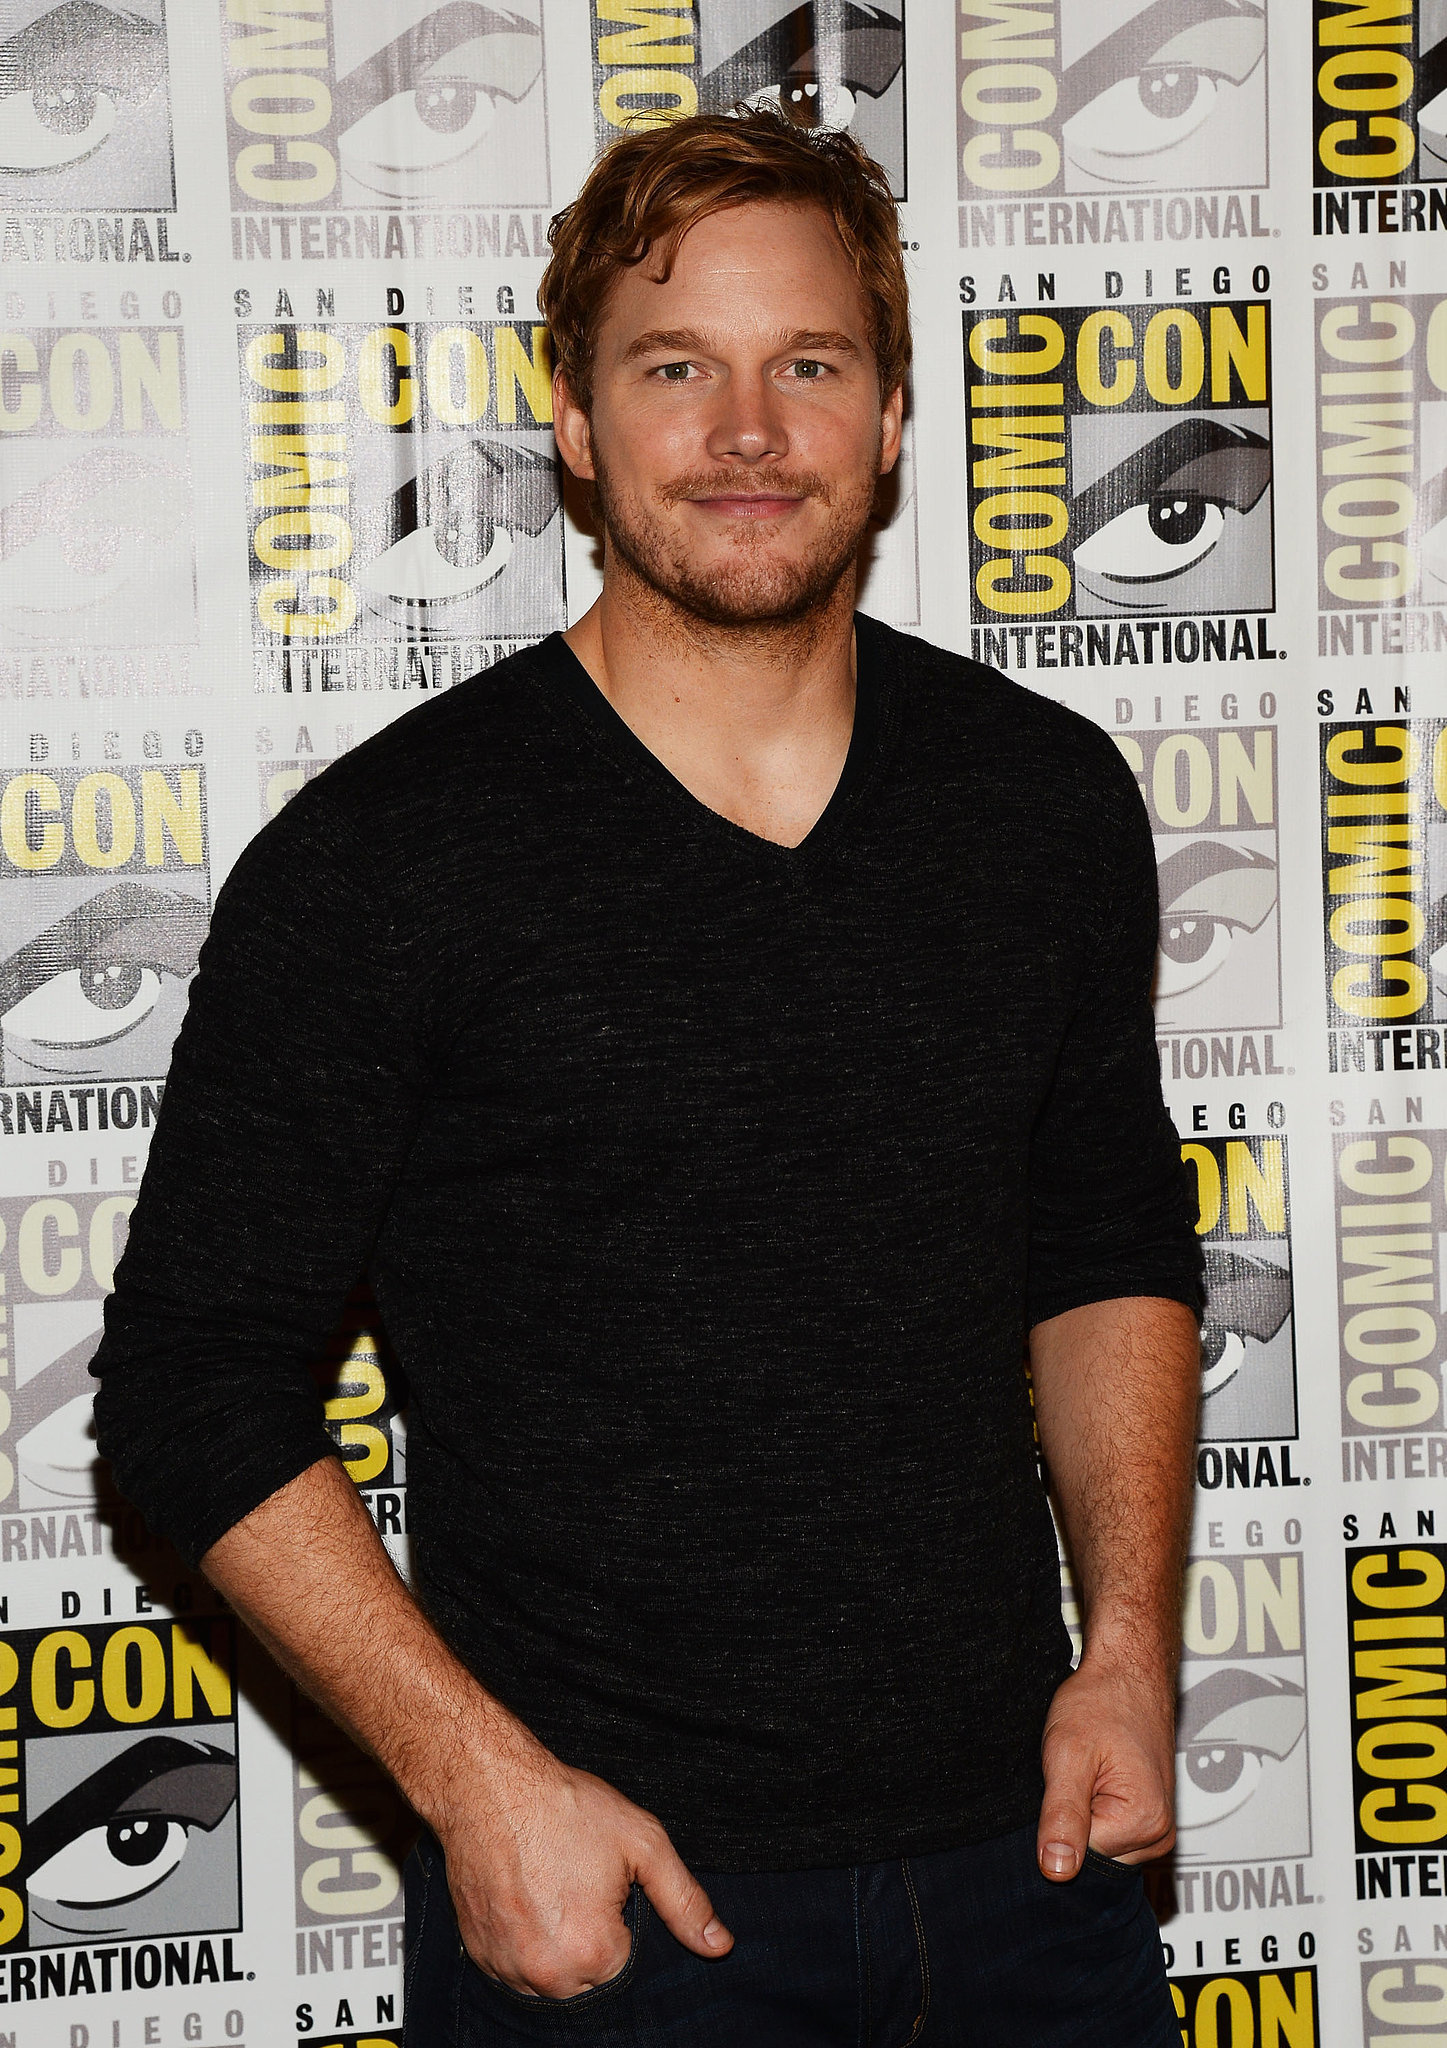 And in 2013, he was looking great at Comic-Con.